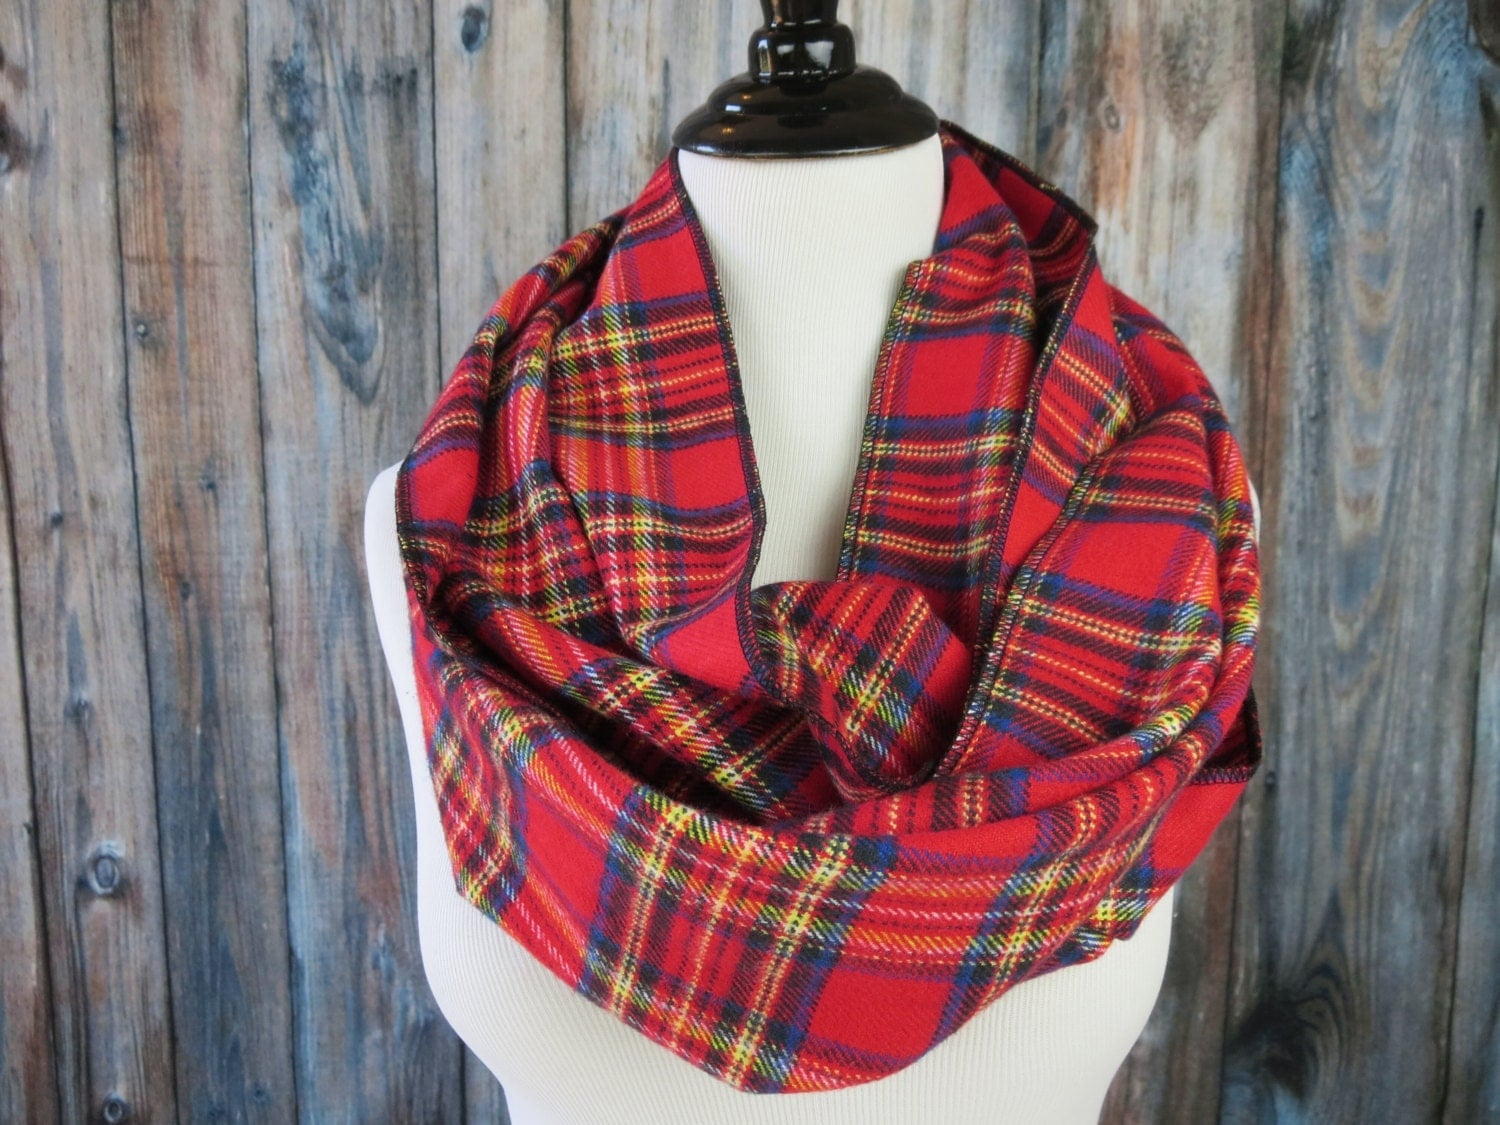 You searched for: plaid scarf! Etsy is the home to thousands of handmade, vintage, and one-of-a-kind products and gifts related to your search. No matter what you're looking for or where you are in the world, our global marketplace of sellers can help you find unique and affordable options. Let's get started!